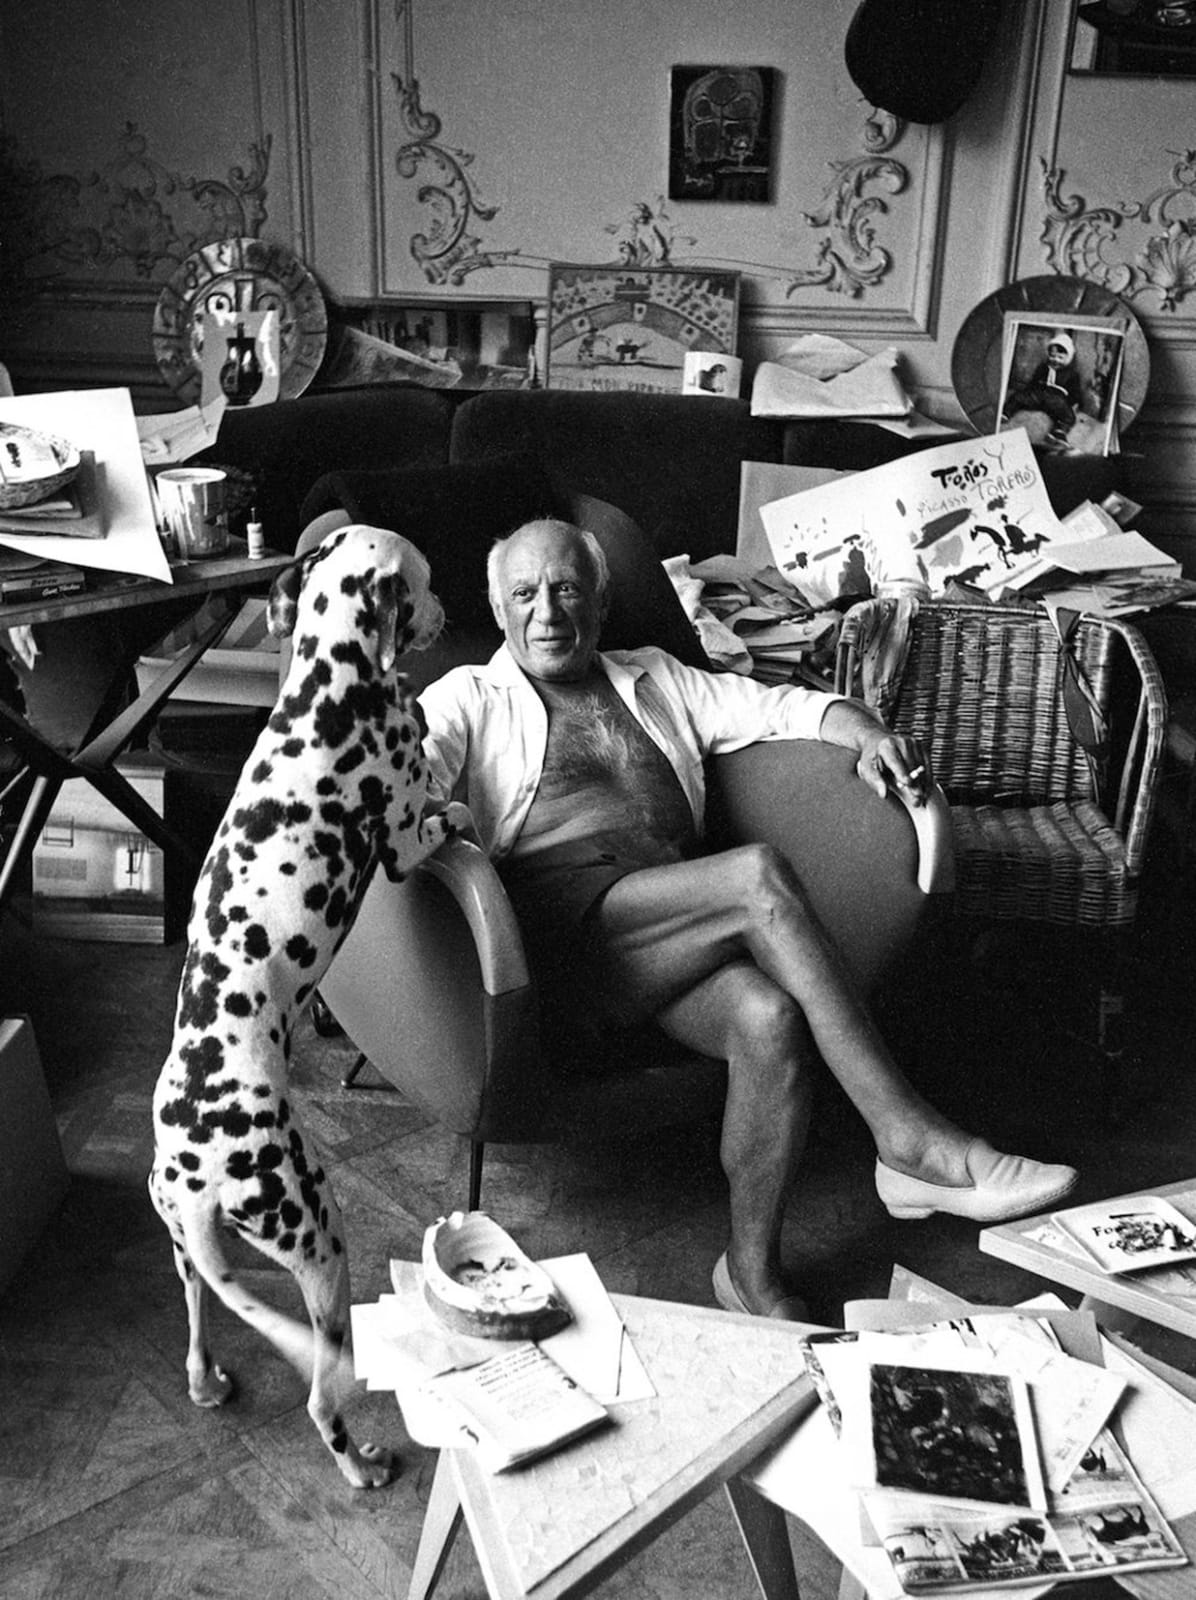 Edward Quinn, Pablo Picasso and his Dog Perro, Villa la Californie, Cannes, 1961